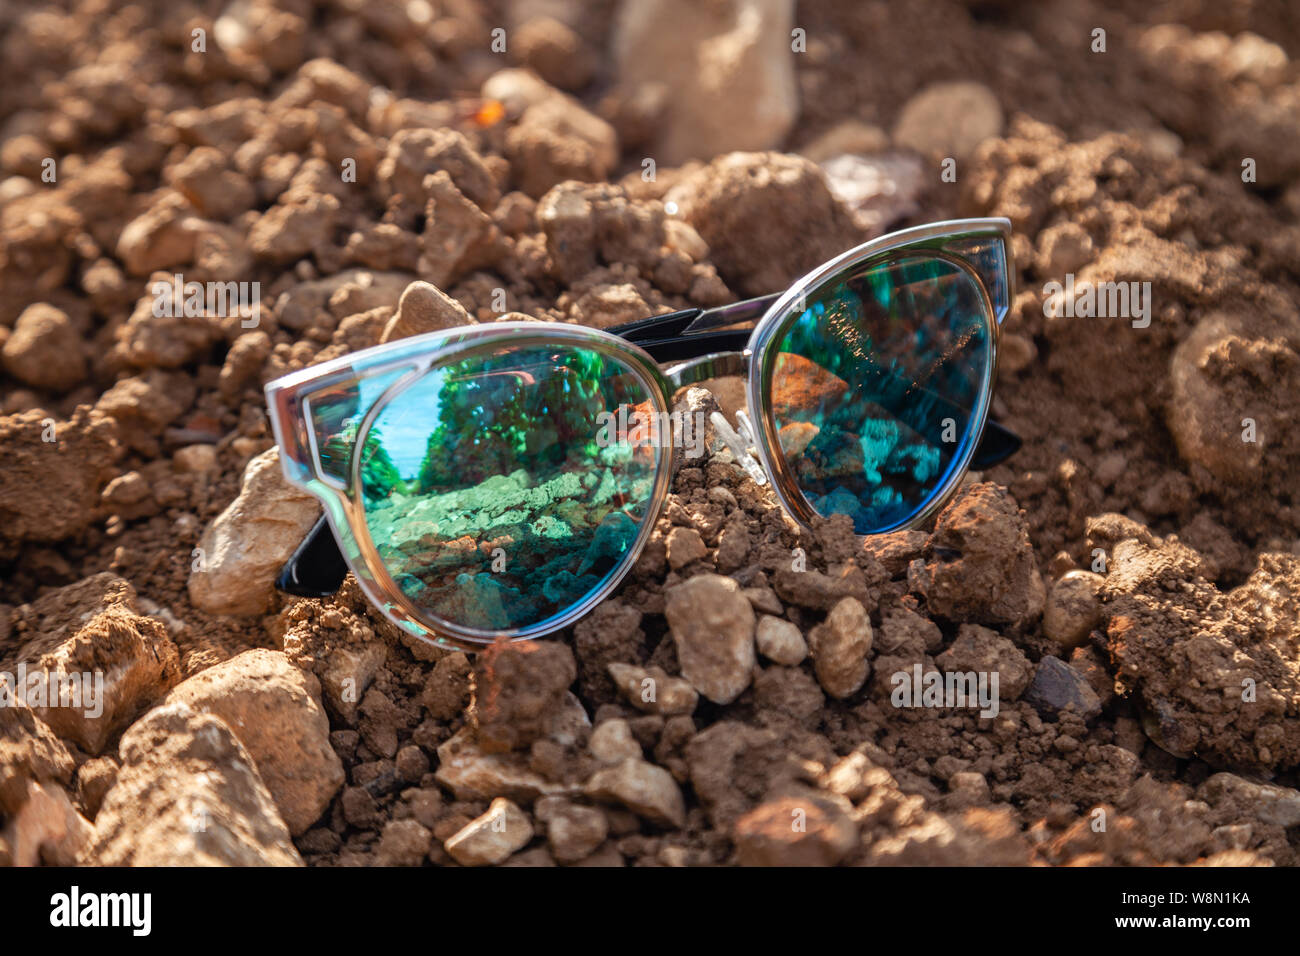 united kingdom good out x online store Closeup beautiful blue green mirrored sunglasses ultraviolet ...